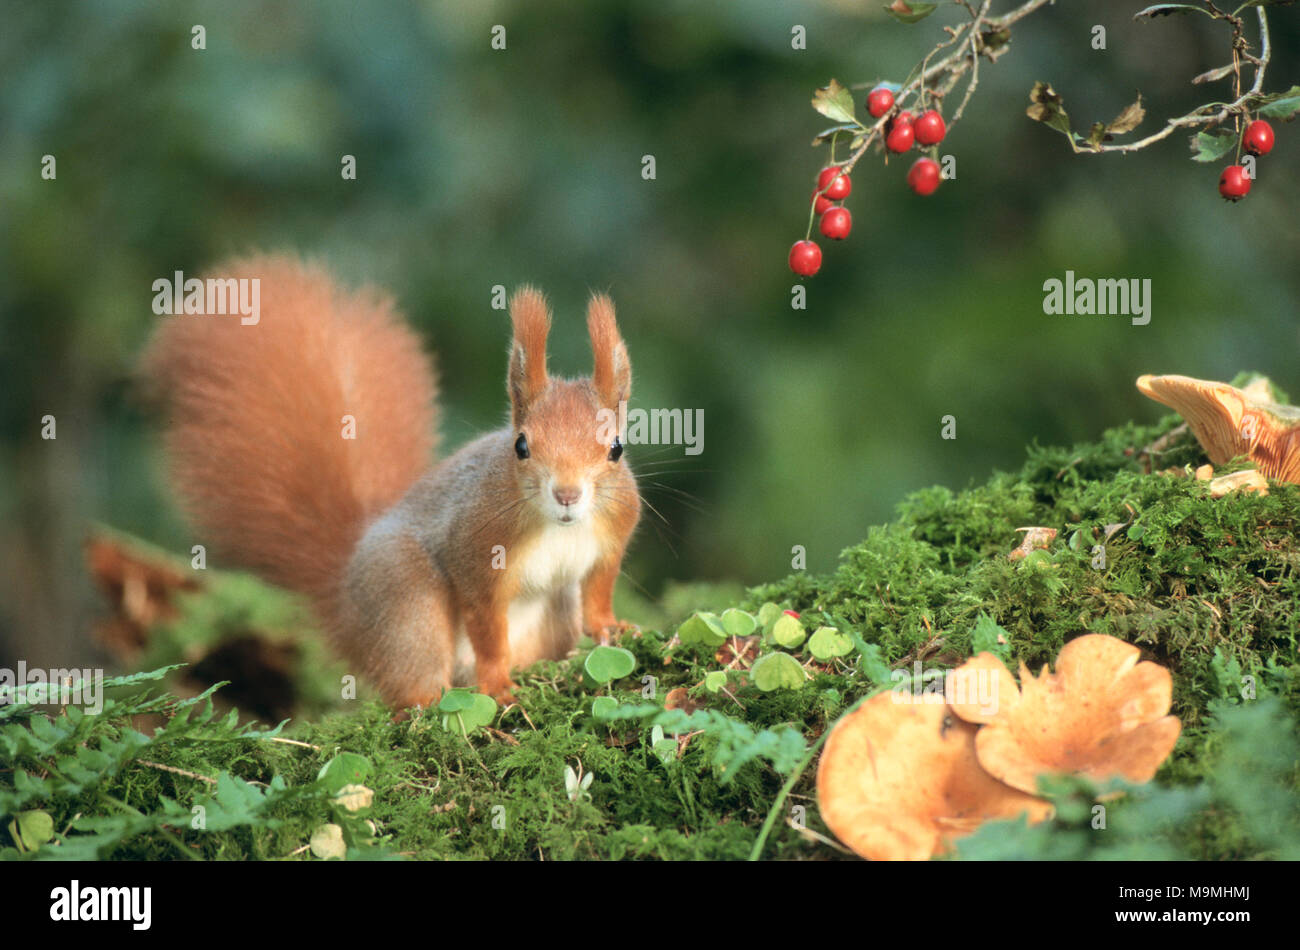 European Red Squirrel (Sciurus vulgaris) next to Crataegus berries. Germany - Stock Image